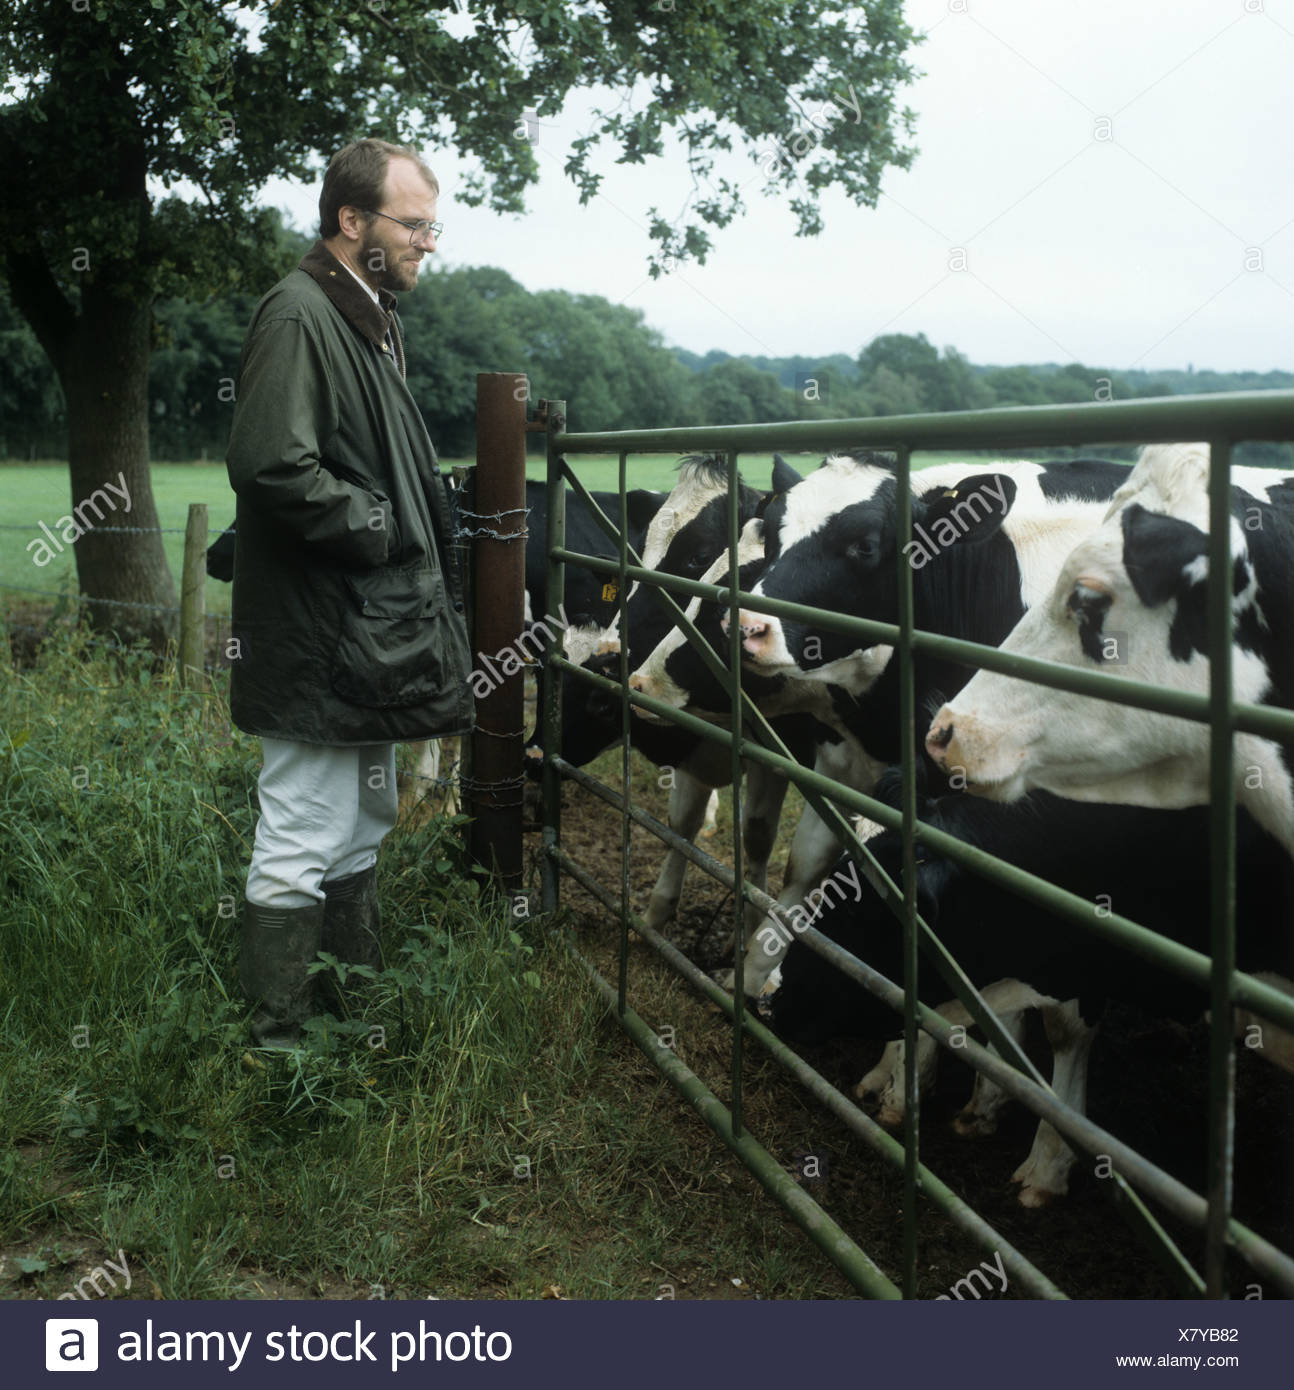 Farmer standing by a gate with cows looking on Hampshire - Stock Image